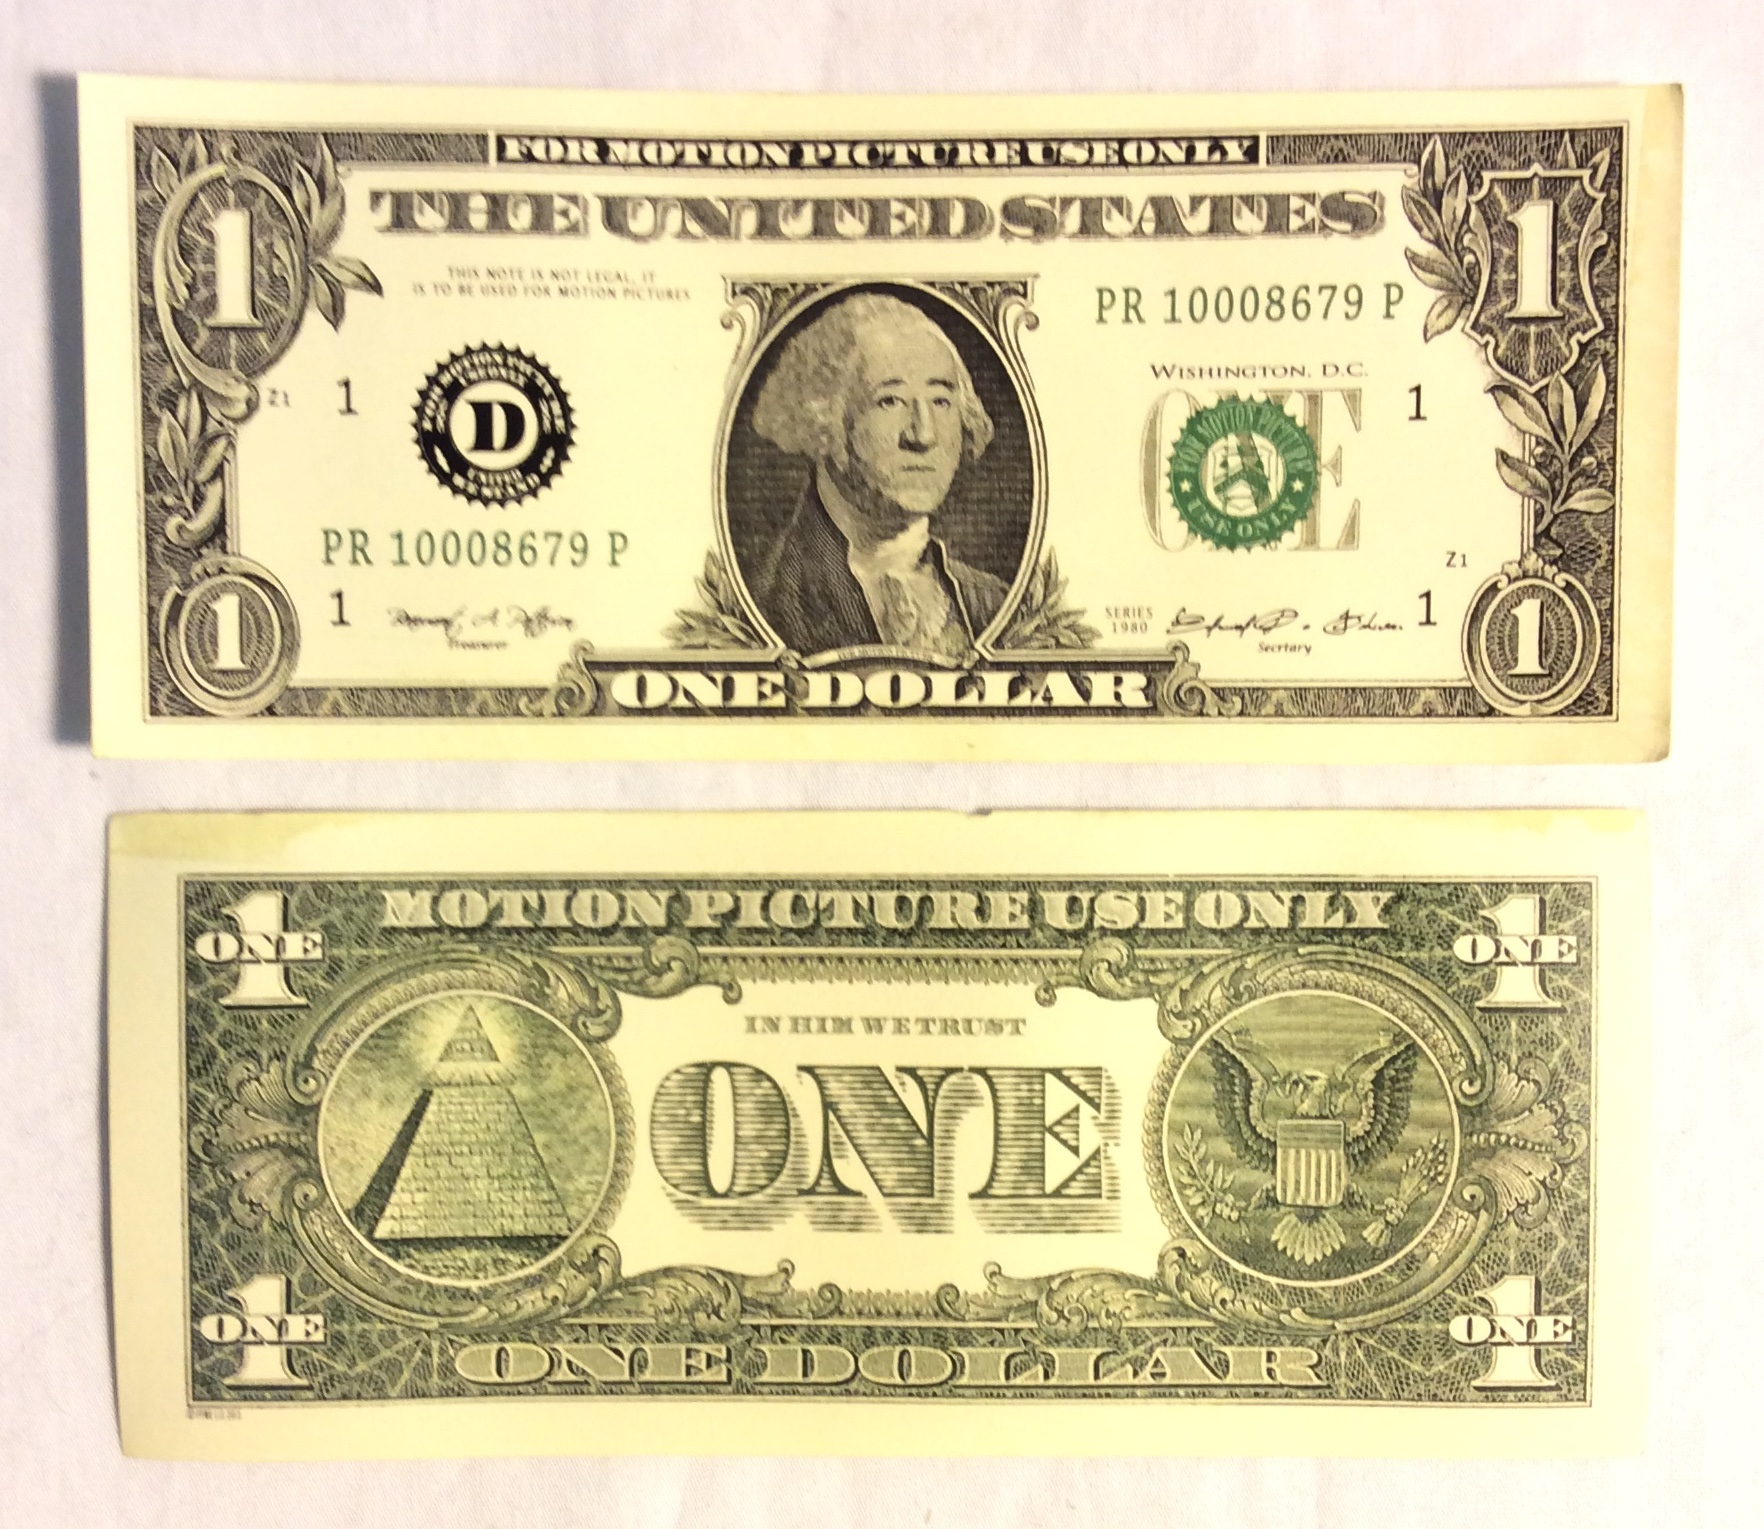 US $1 Bill, double-sided